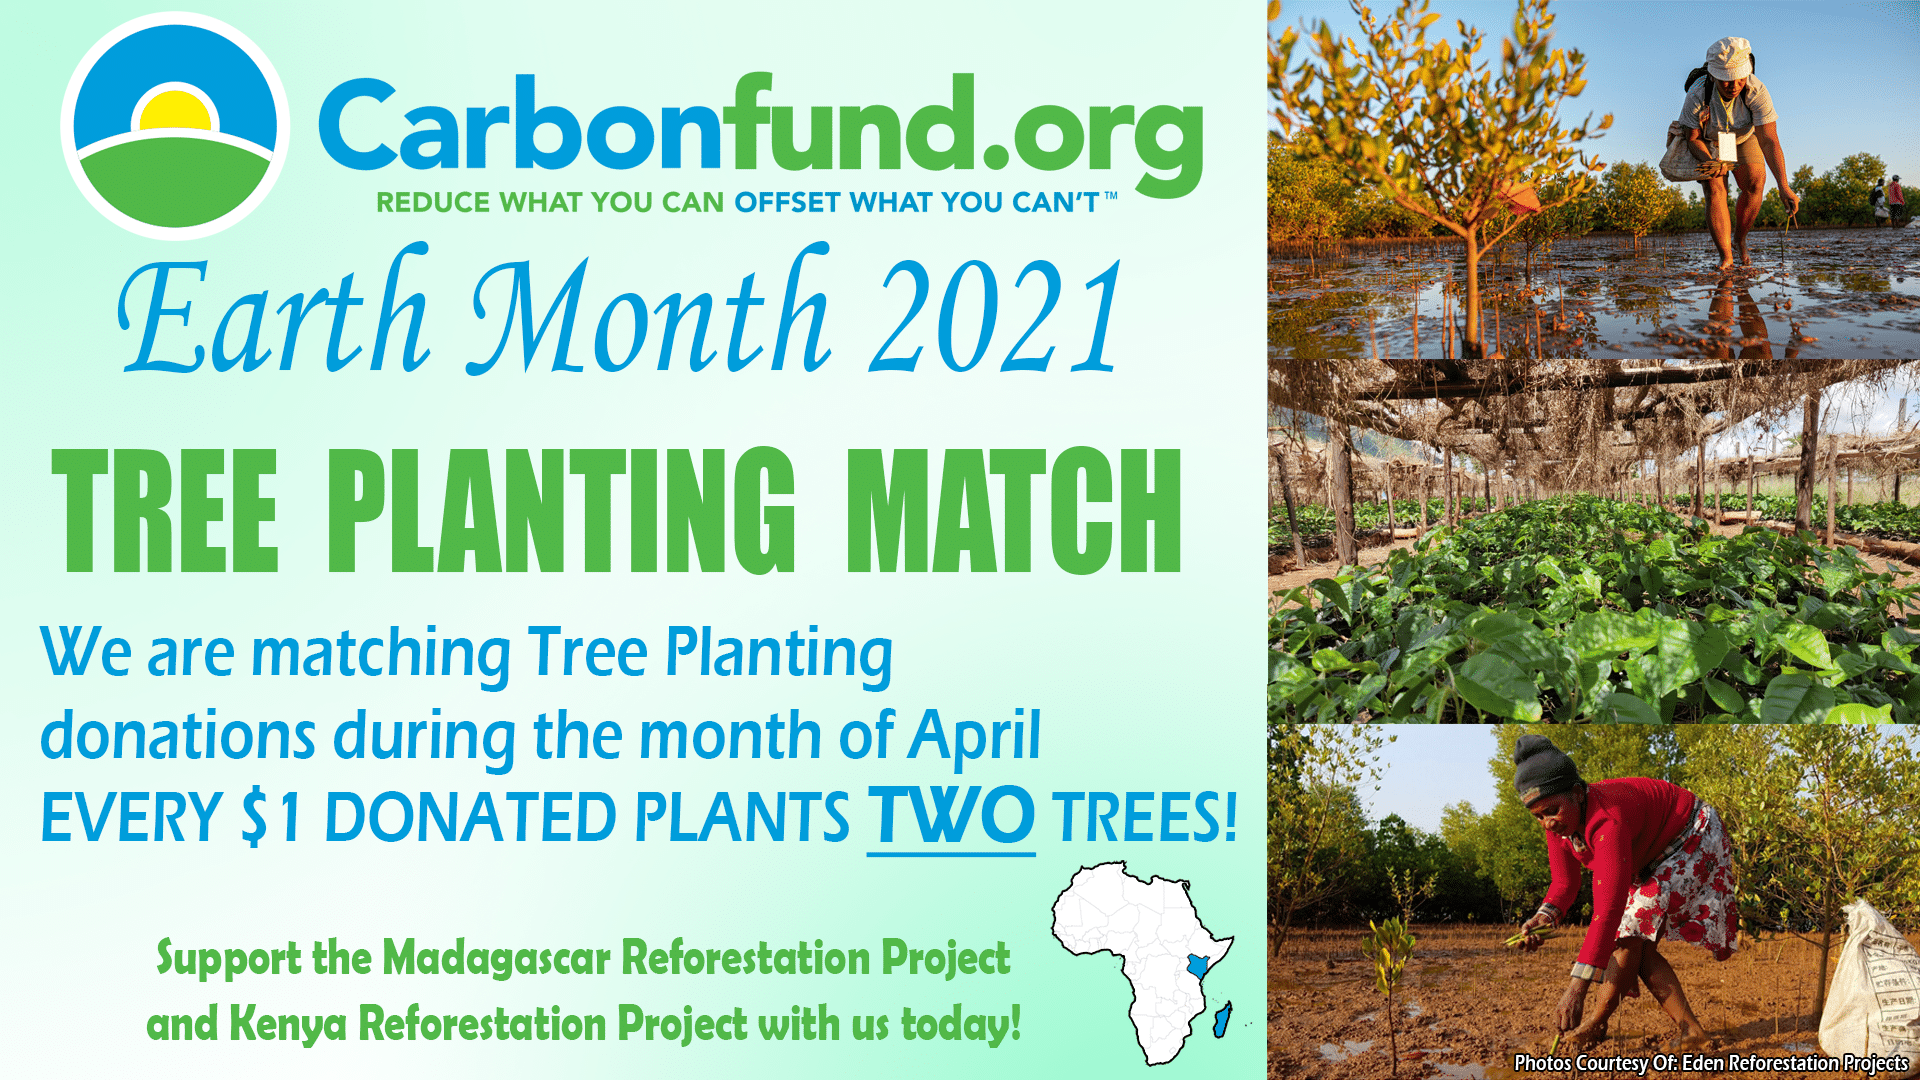 April is Earth Month. Carbonfund.org Tree Planting Match. Fight Climate Change. Plant Trees In Madagascar and Kenya.